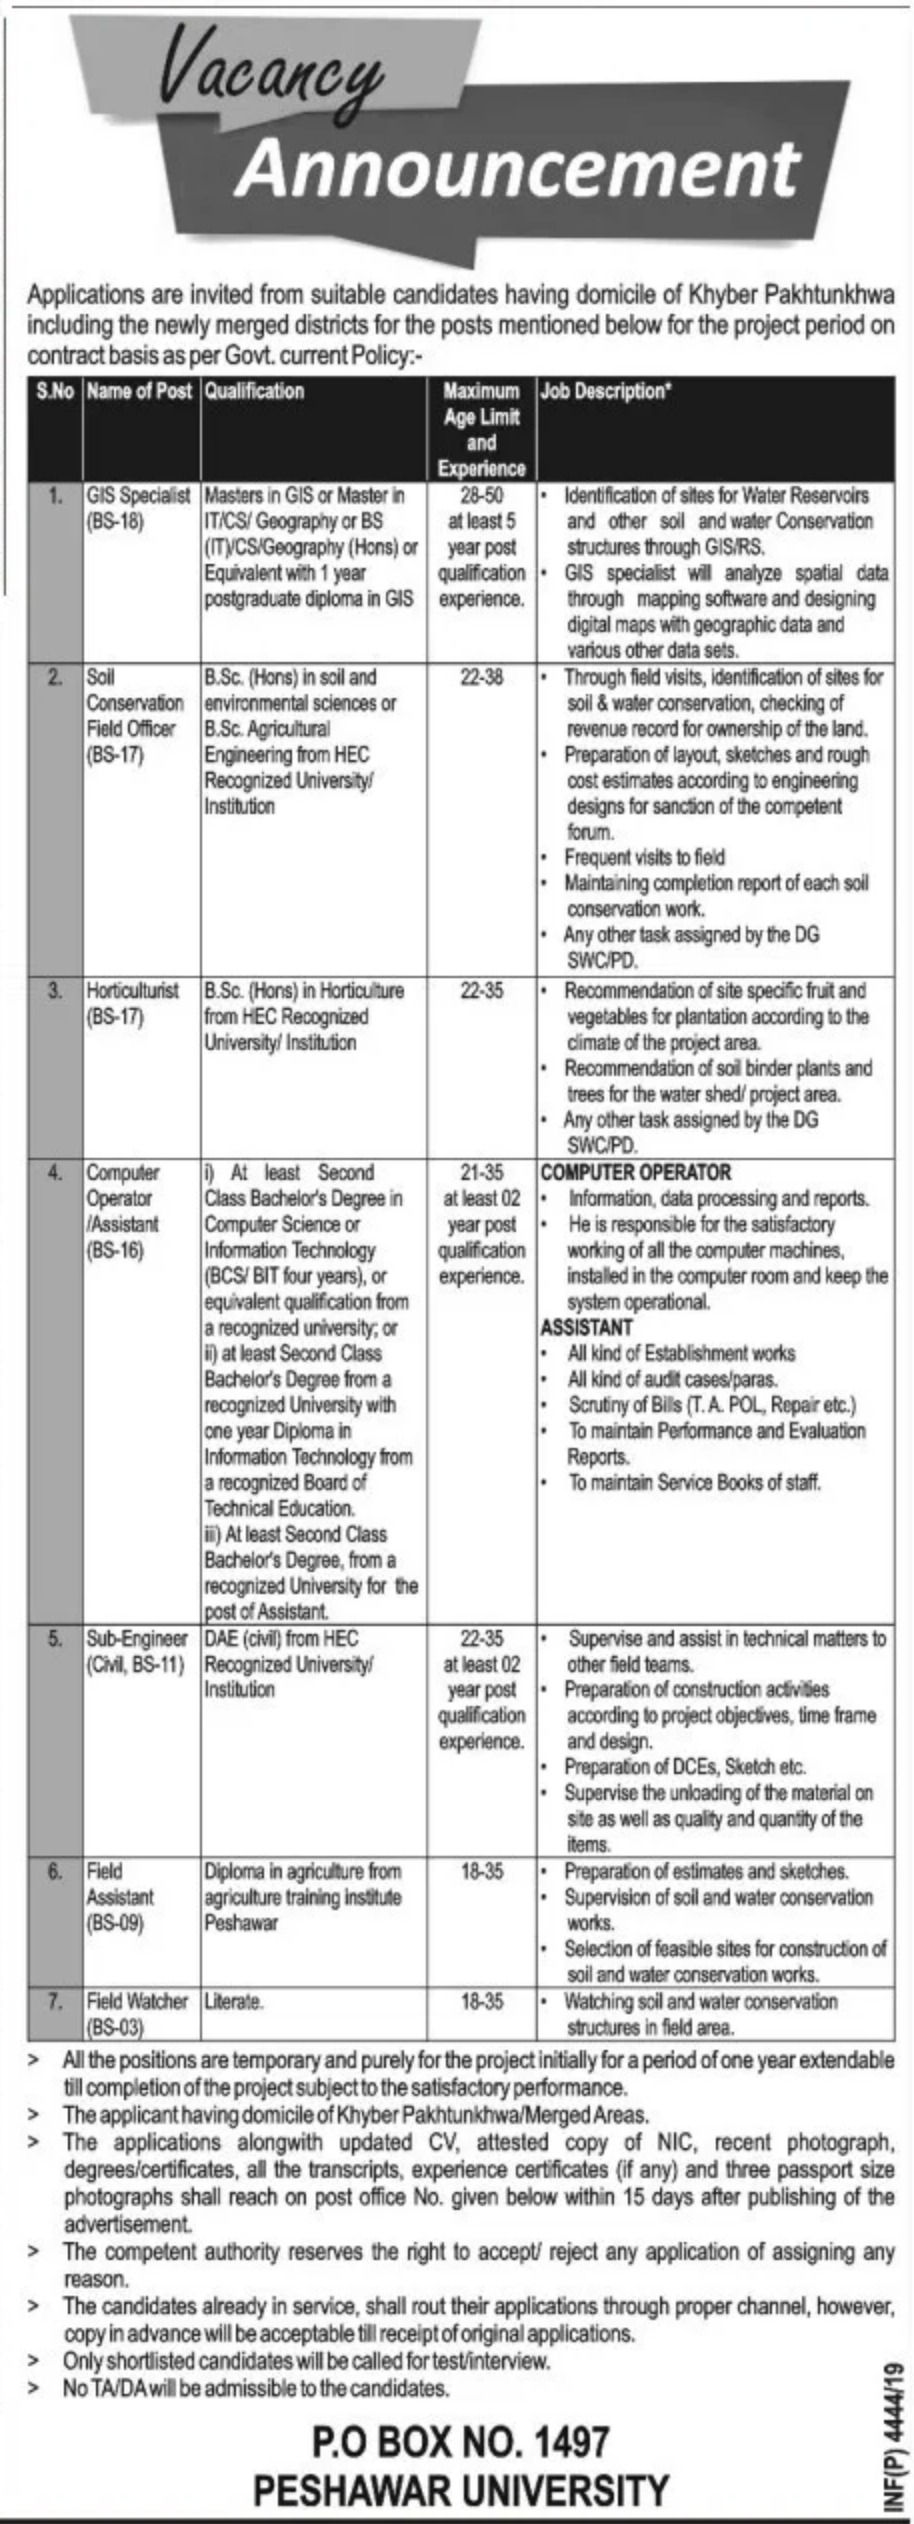 Public Sector Organization Jobs 2019 P.O.Box 1497 Peshawar